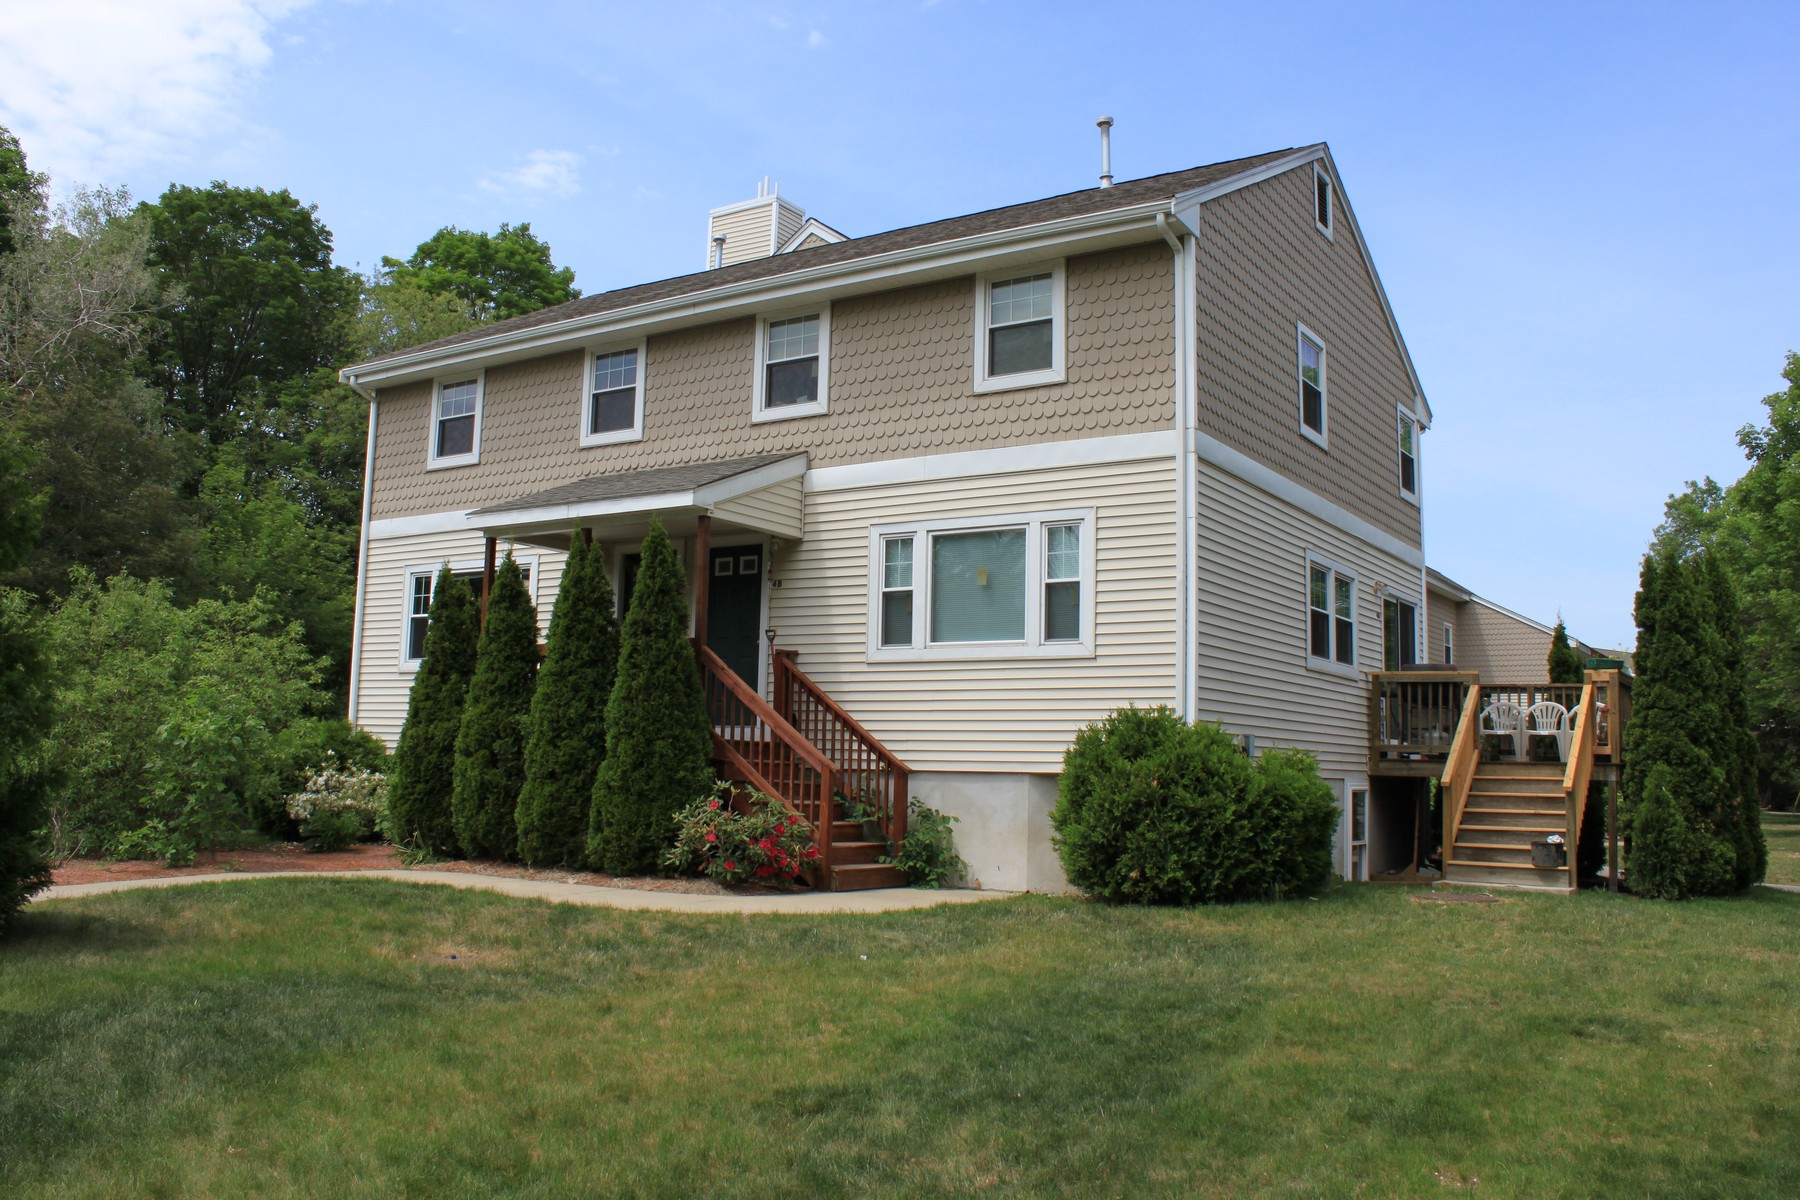 Casa unifamiliar adosada (Townhouse) por un Alquiler en End Unit Townhouse In A Nice Neighborhood 4A Mayberry Drive Westborough, Massachusetts 01581 Estados Unidos